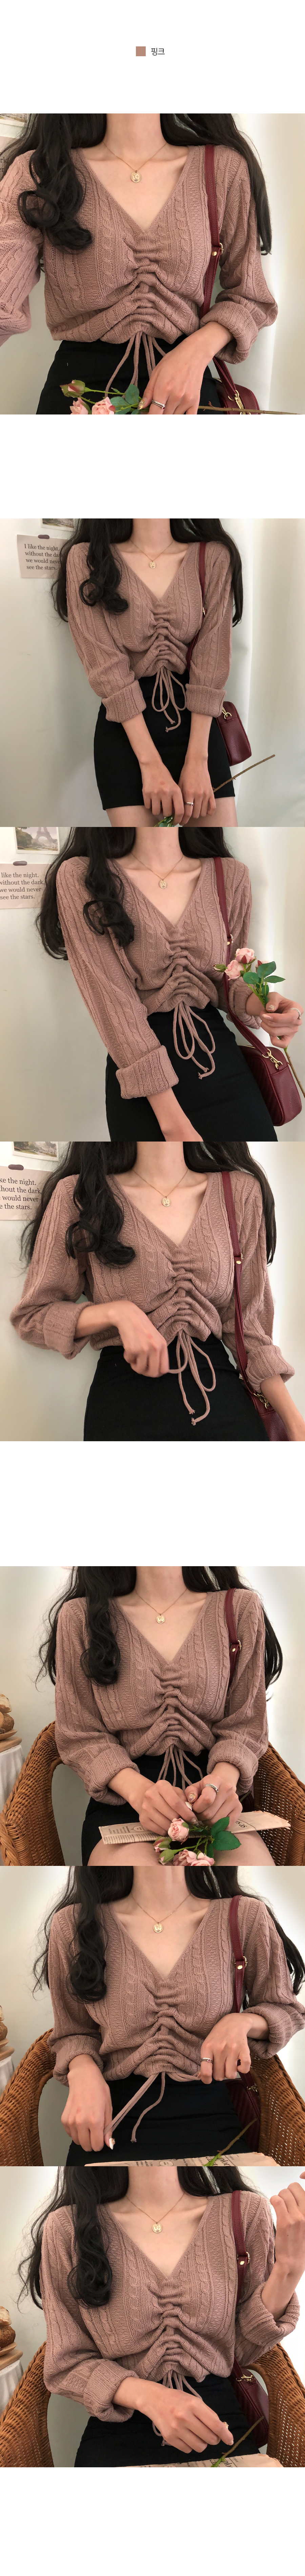 Muel cable string ribbed knit